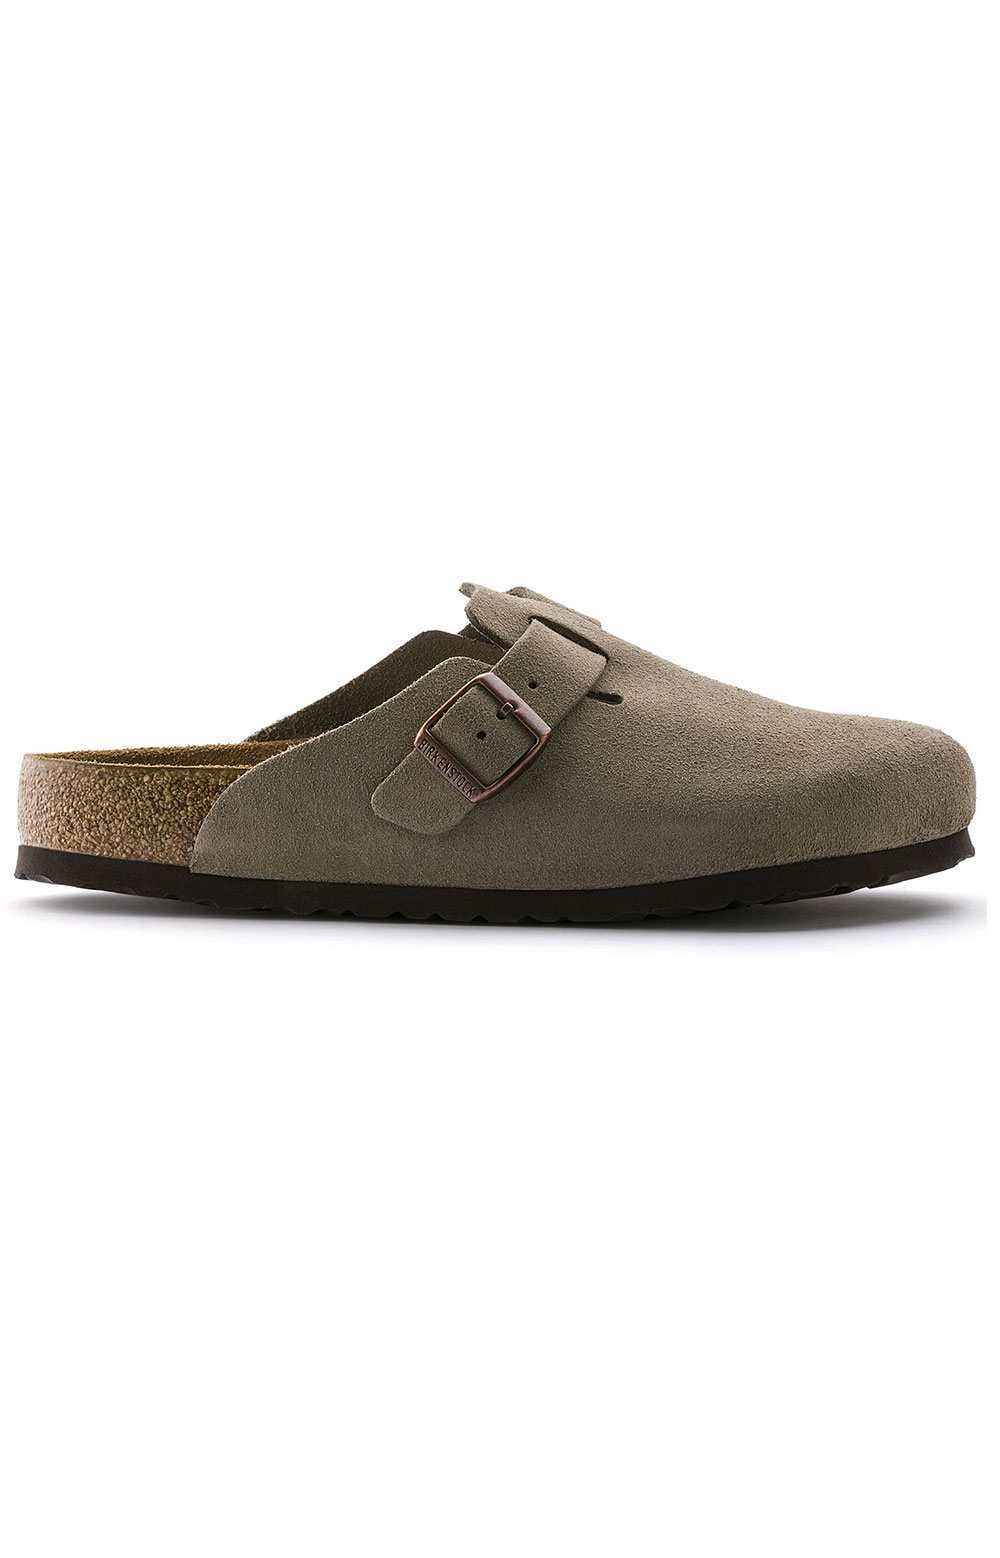 (0560771)Boston Soft Footbed Sandals - Taupe Suede  4